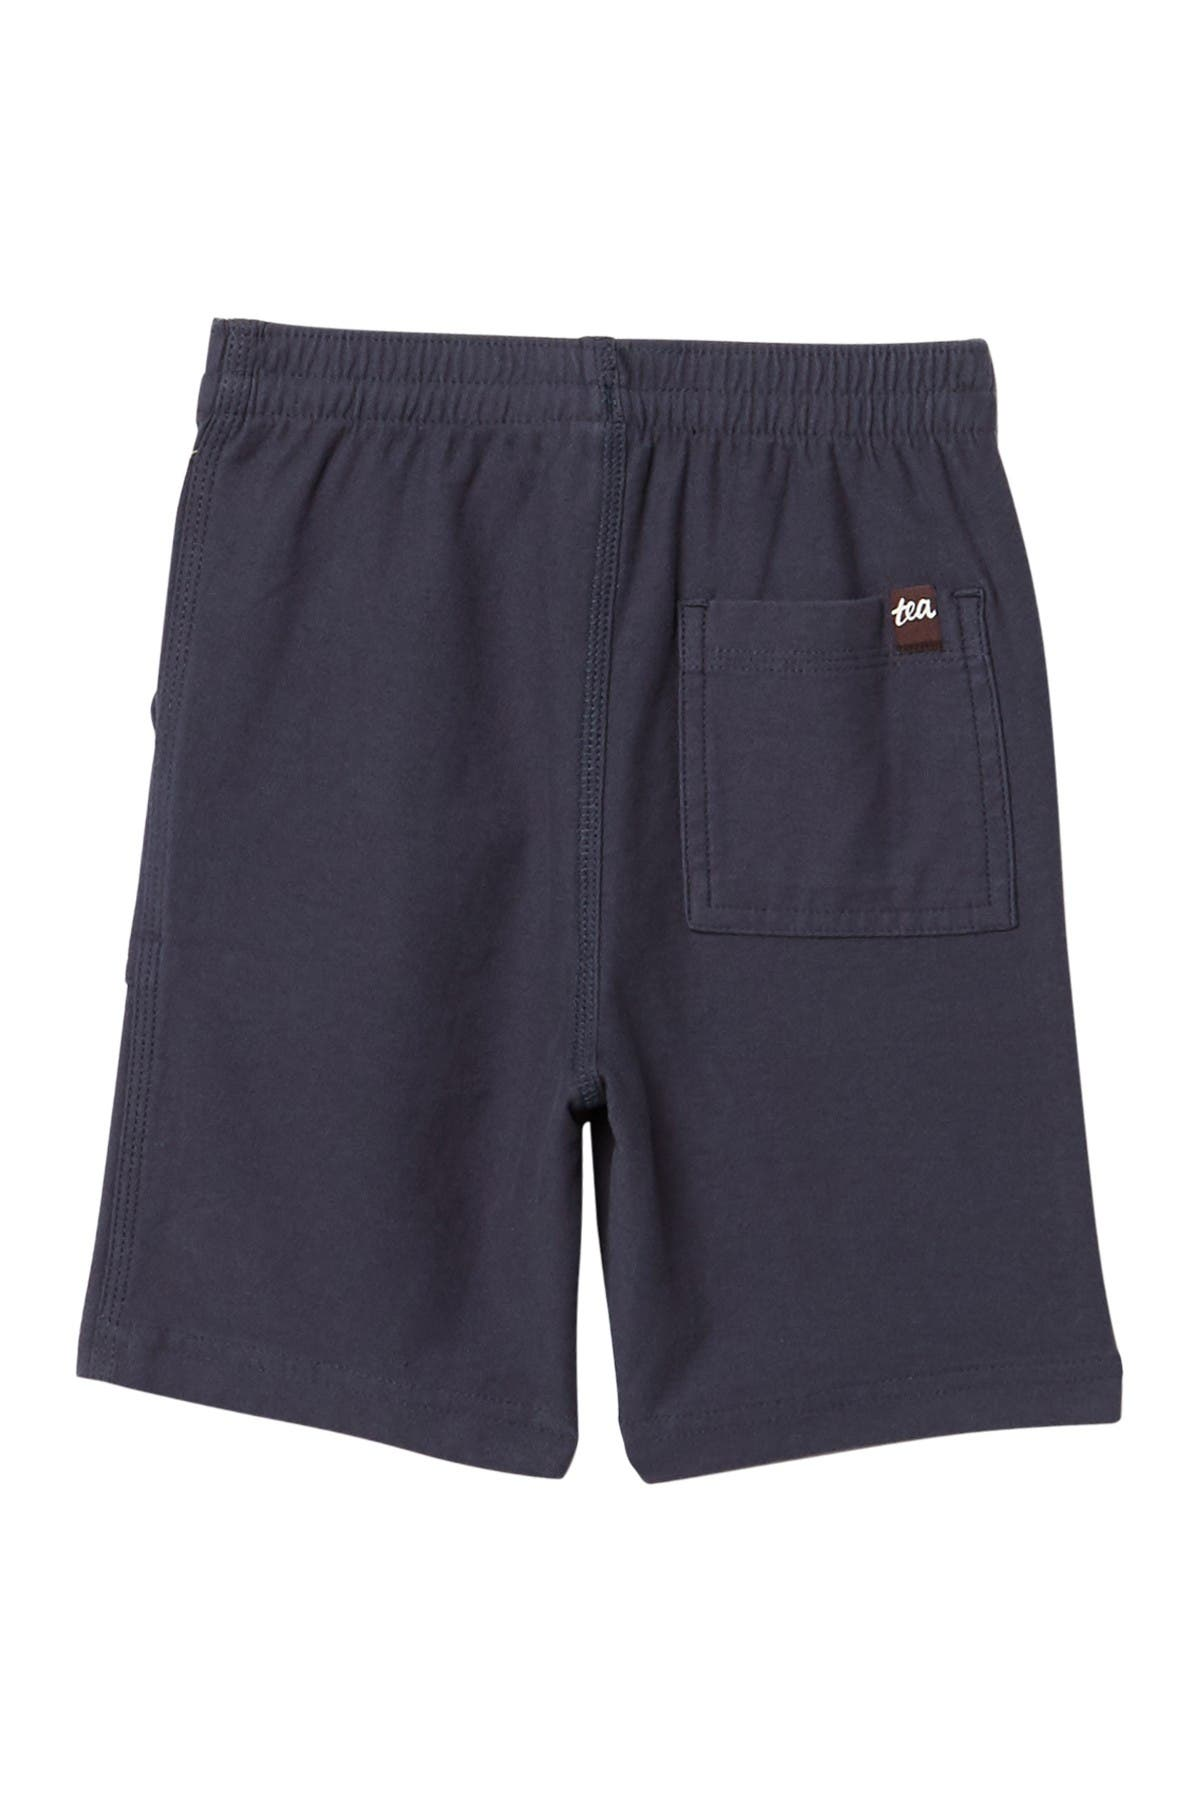 Tea Collection Playwear Solid Shorts